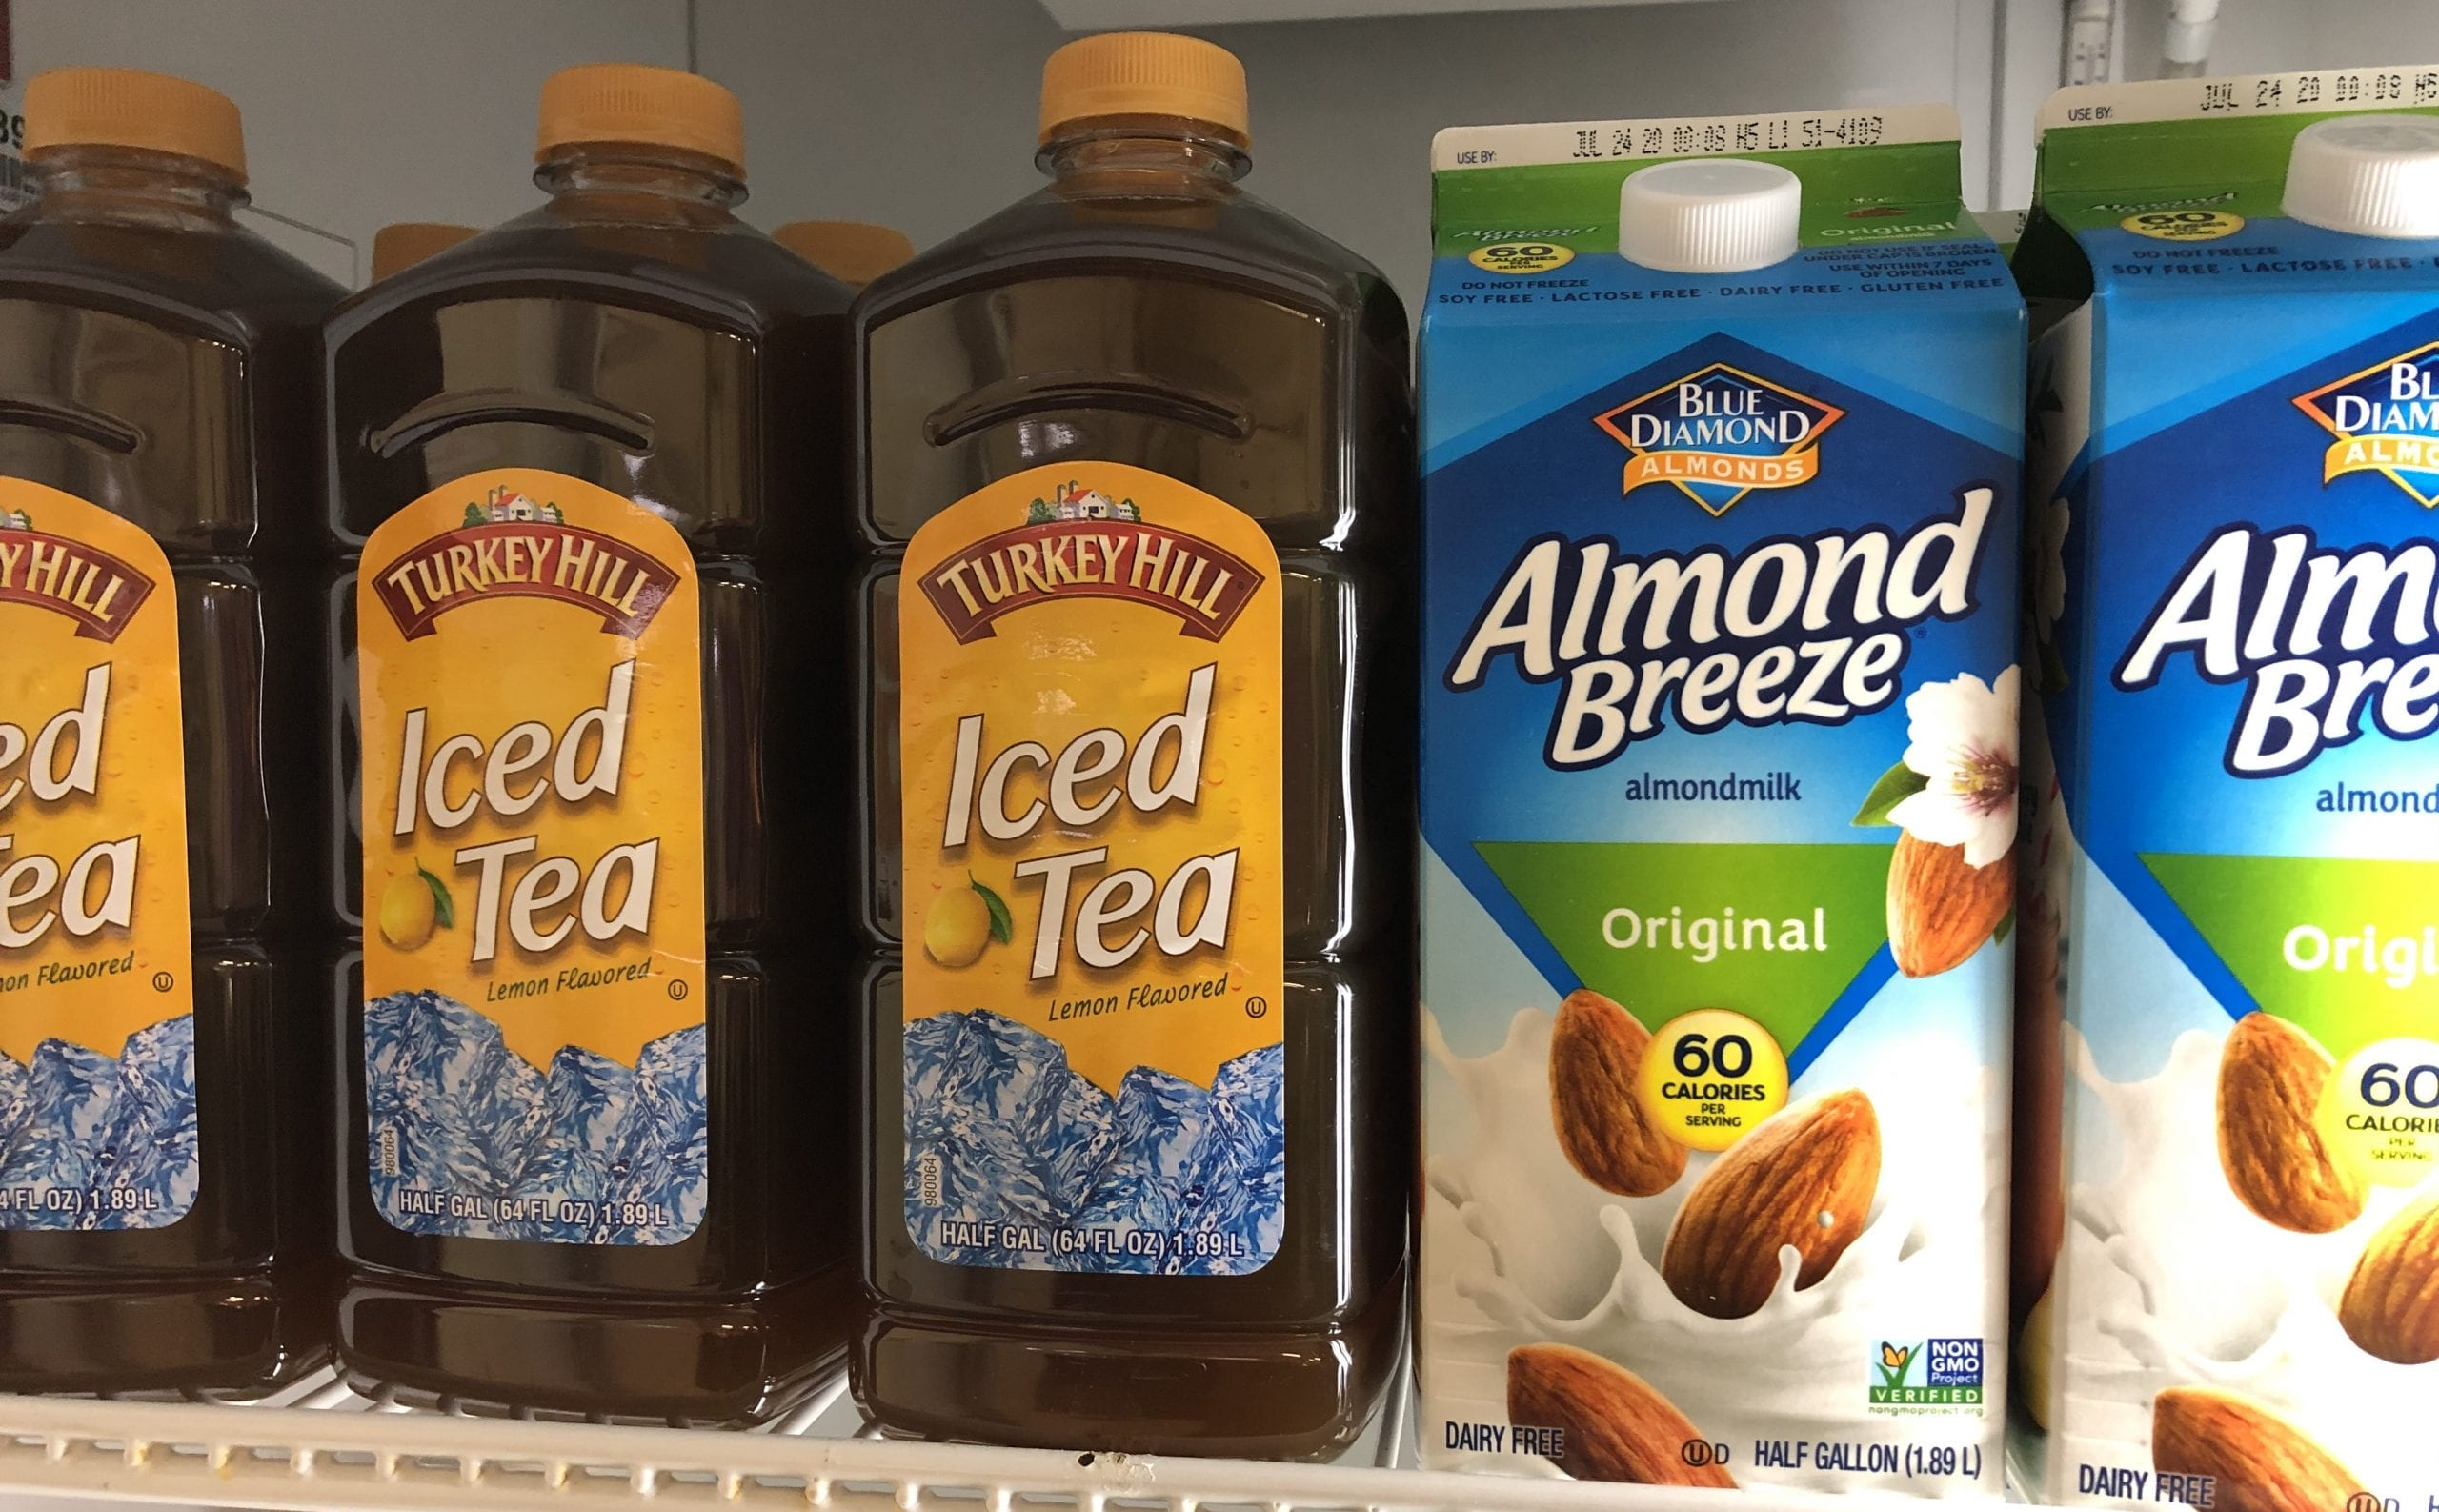 Turkey Hill Iced Tea & Almond Breeze